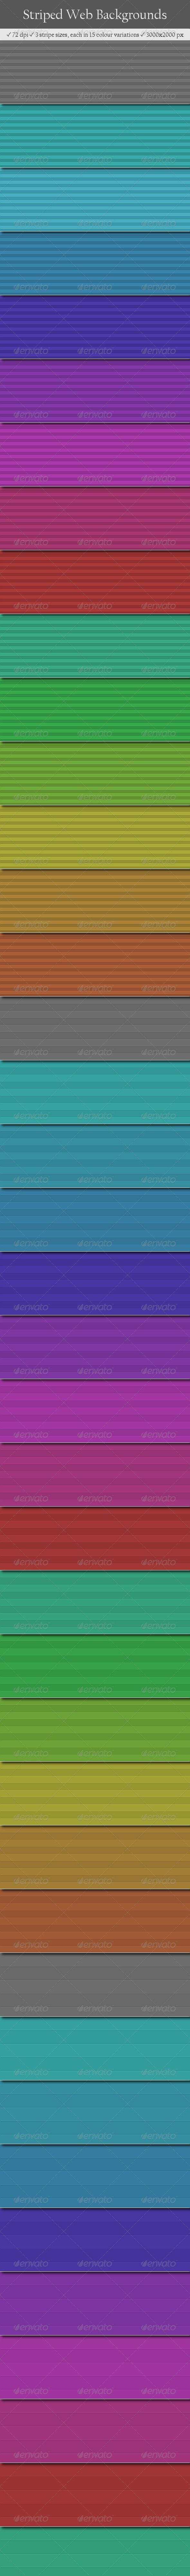 Striped Web Backgrounds - Miscellaneous Backgrounds